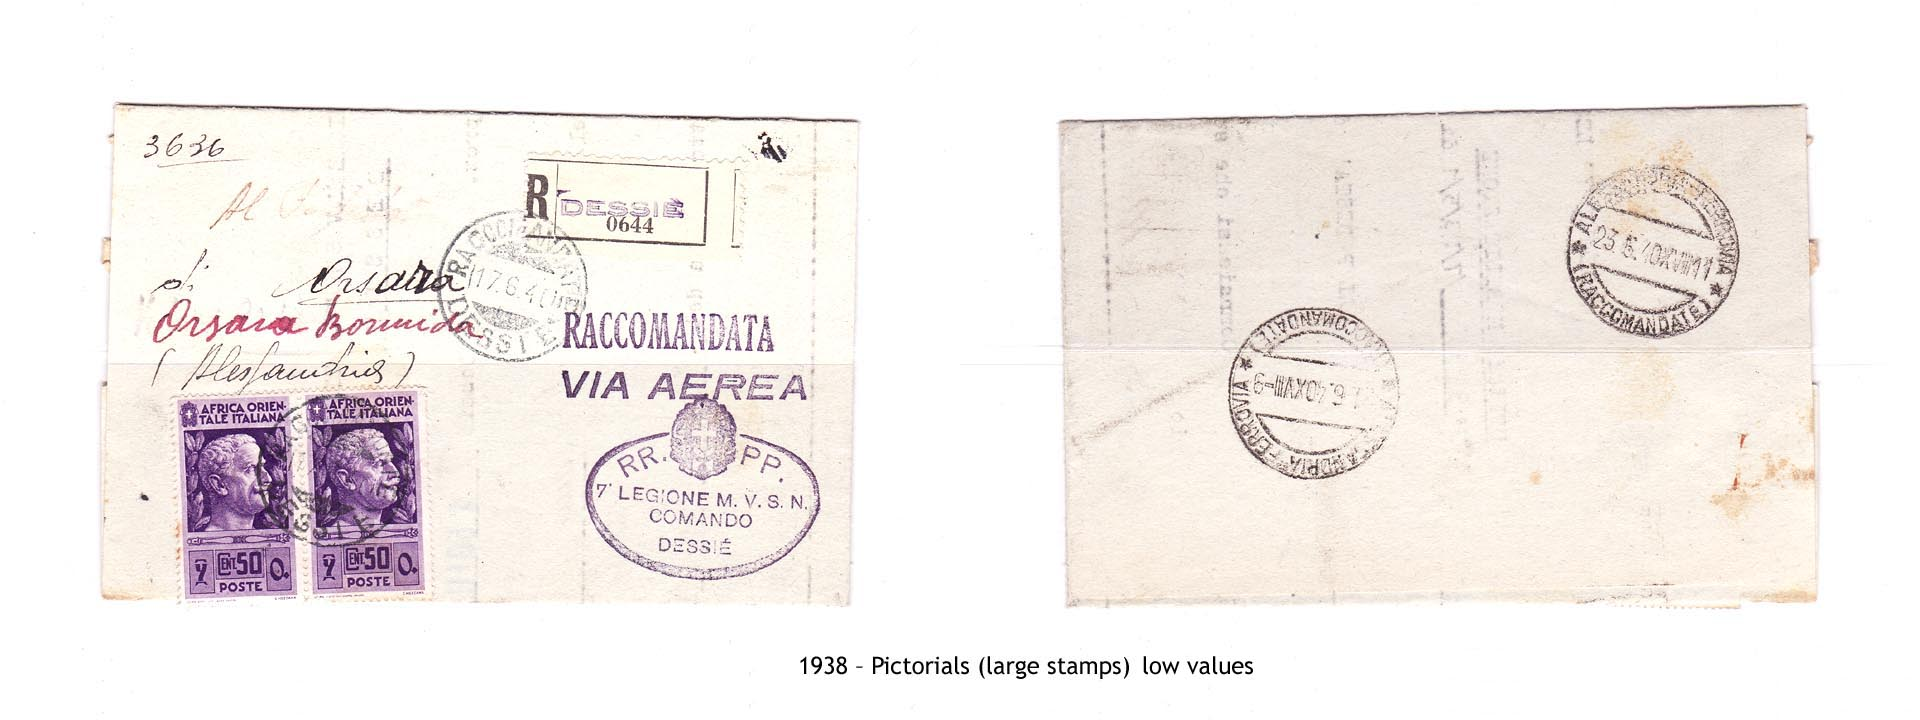 1938 – AOI Pictorials (large stamps) low values